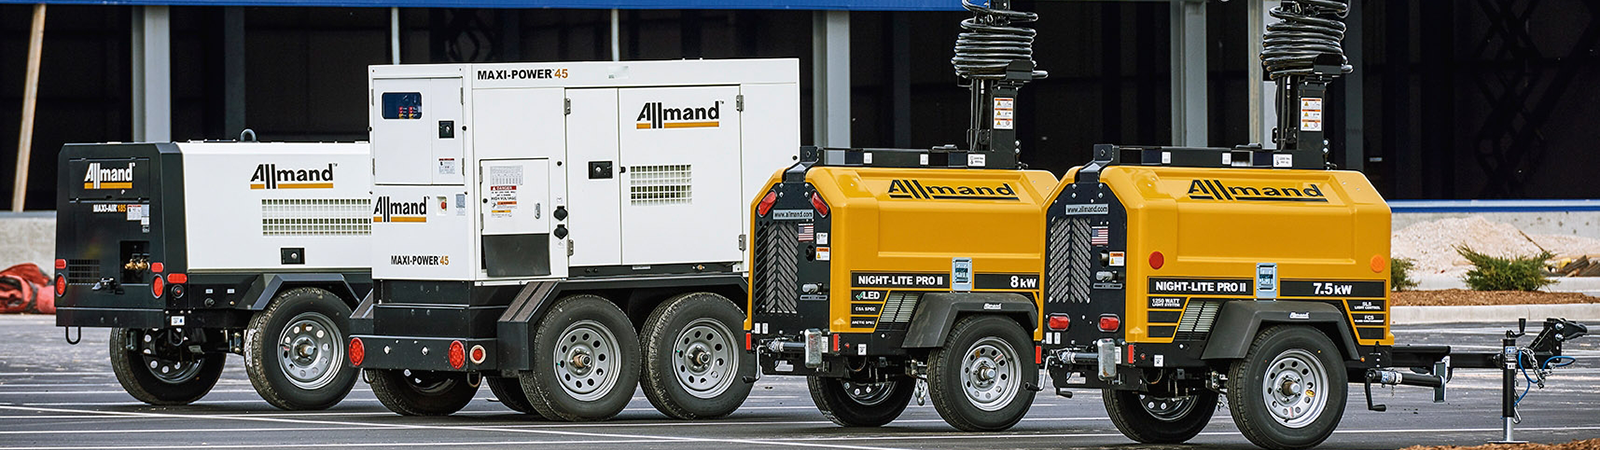 Allmand Jobsite Support Equipment